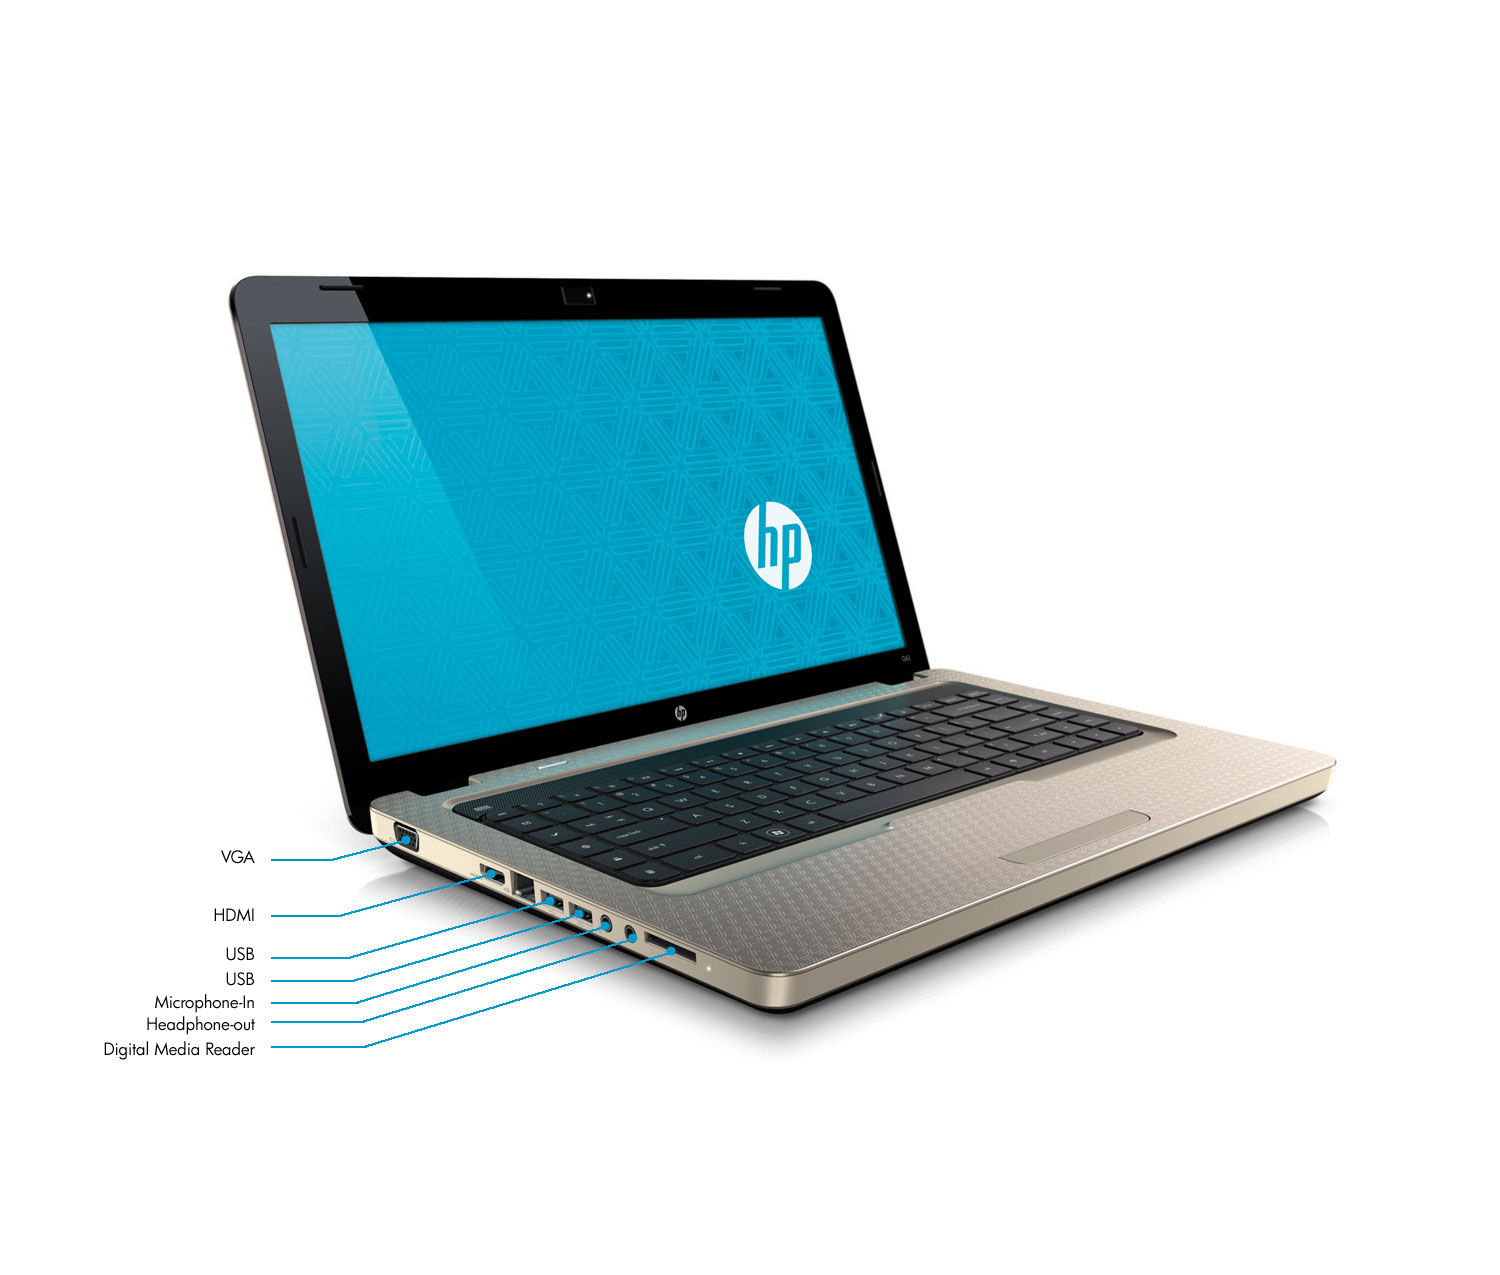 Amazon.com : HP G62140US 15.6Inch Laptop Bronze : Notebook